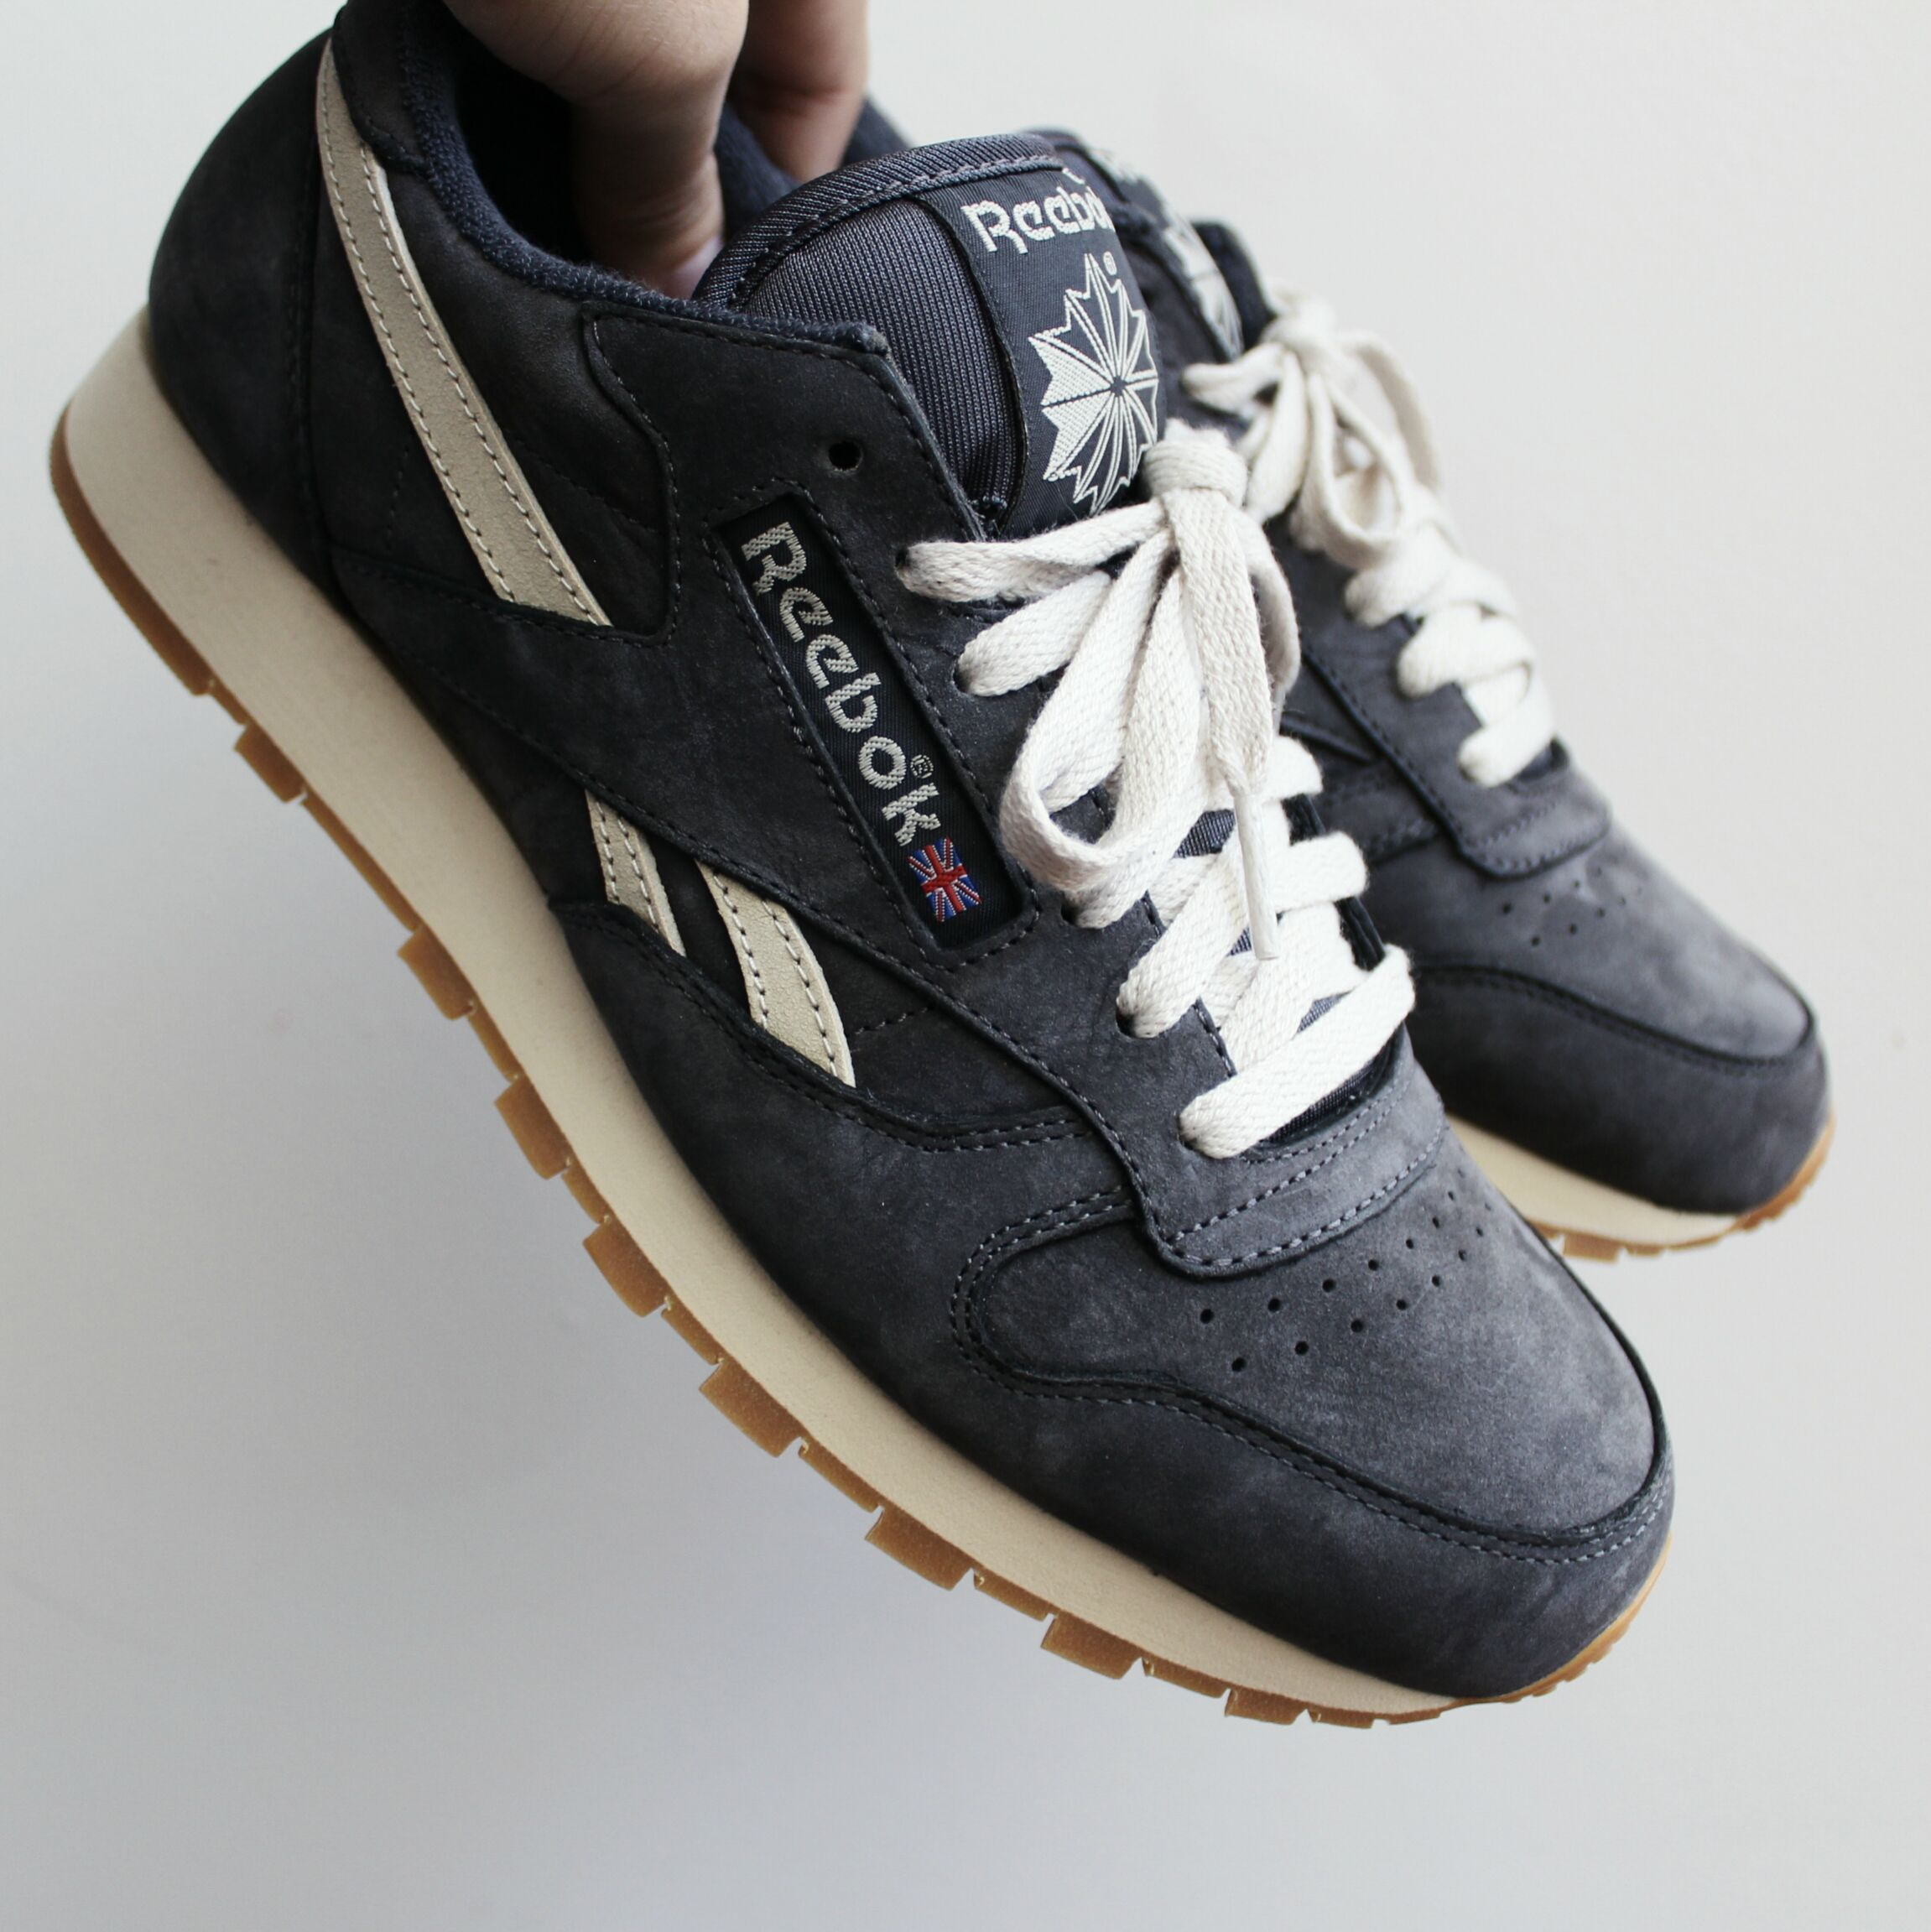 80637b6f1ba Reebok Classic Leather Vintage Retro Suede (J93612) Tags  sneakers ...